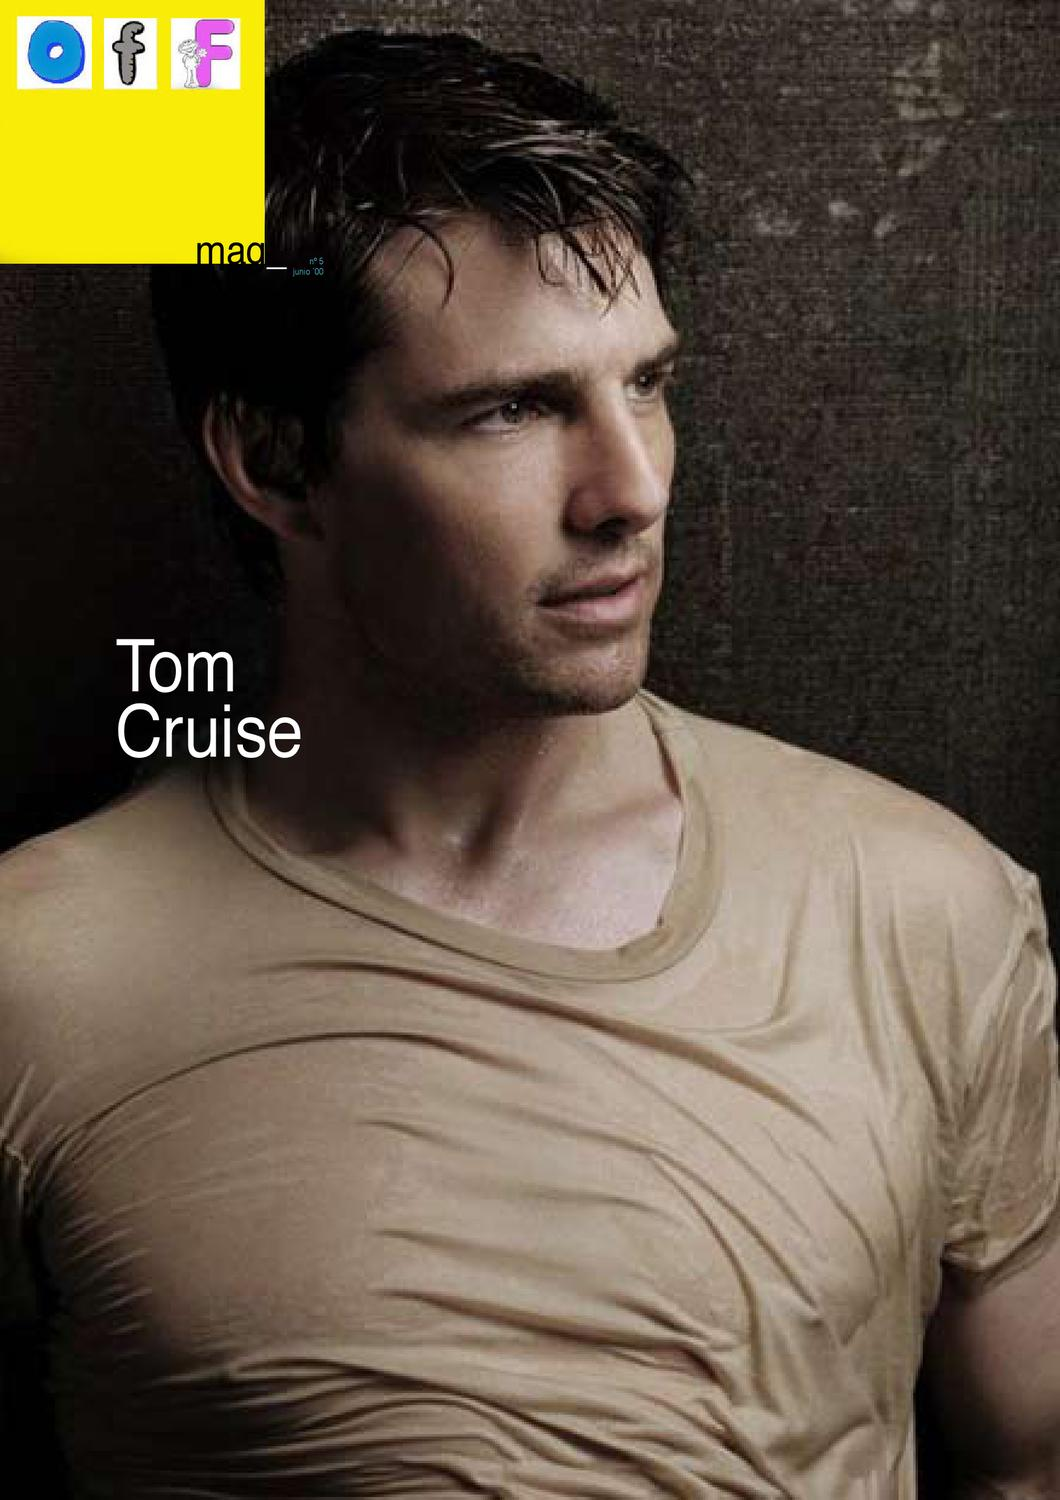 Noemi Bcn Porno off magazine _issue_6_tom cruiseoff mag - issuu